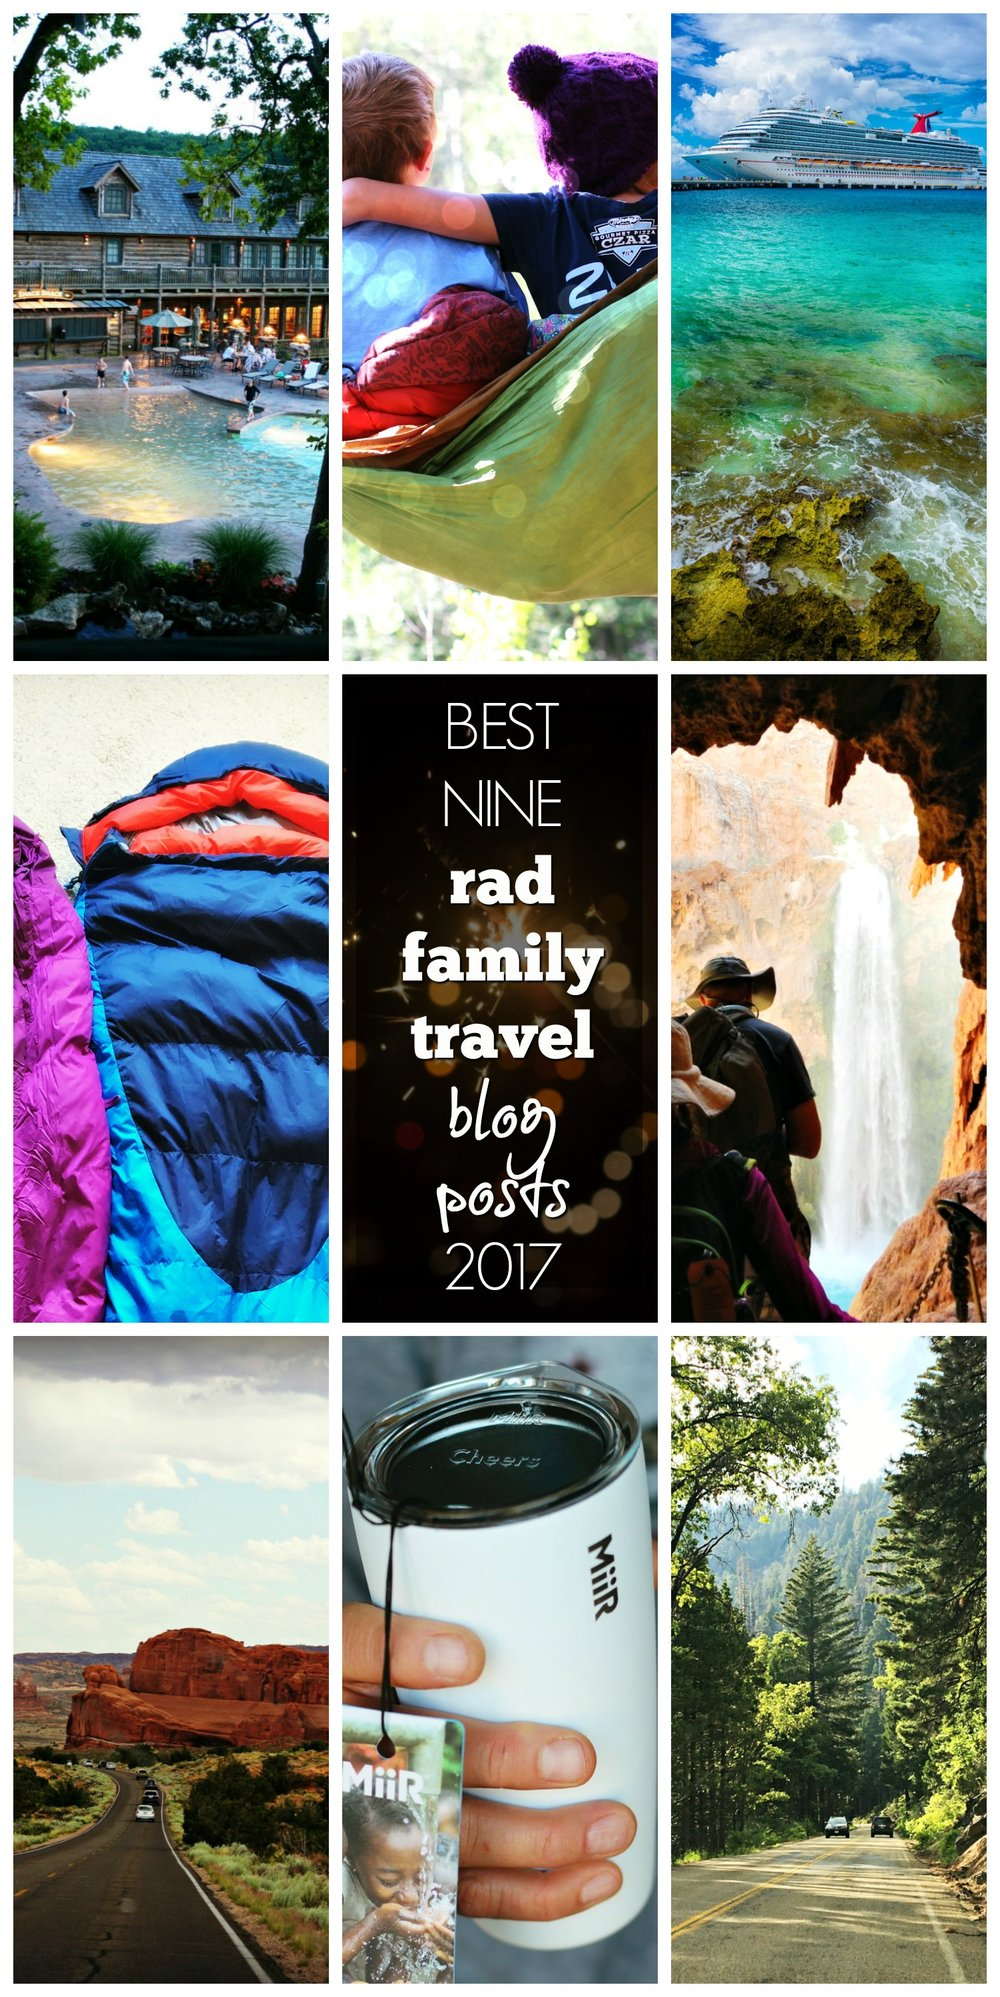 best nine rad family travel posts